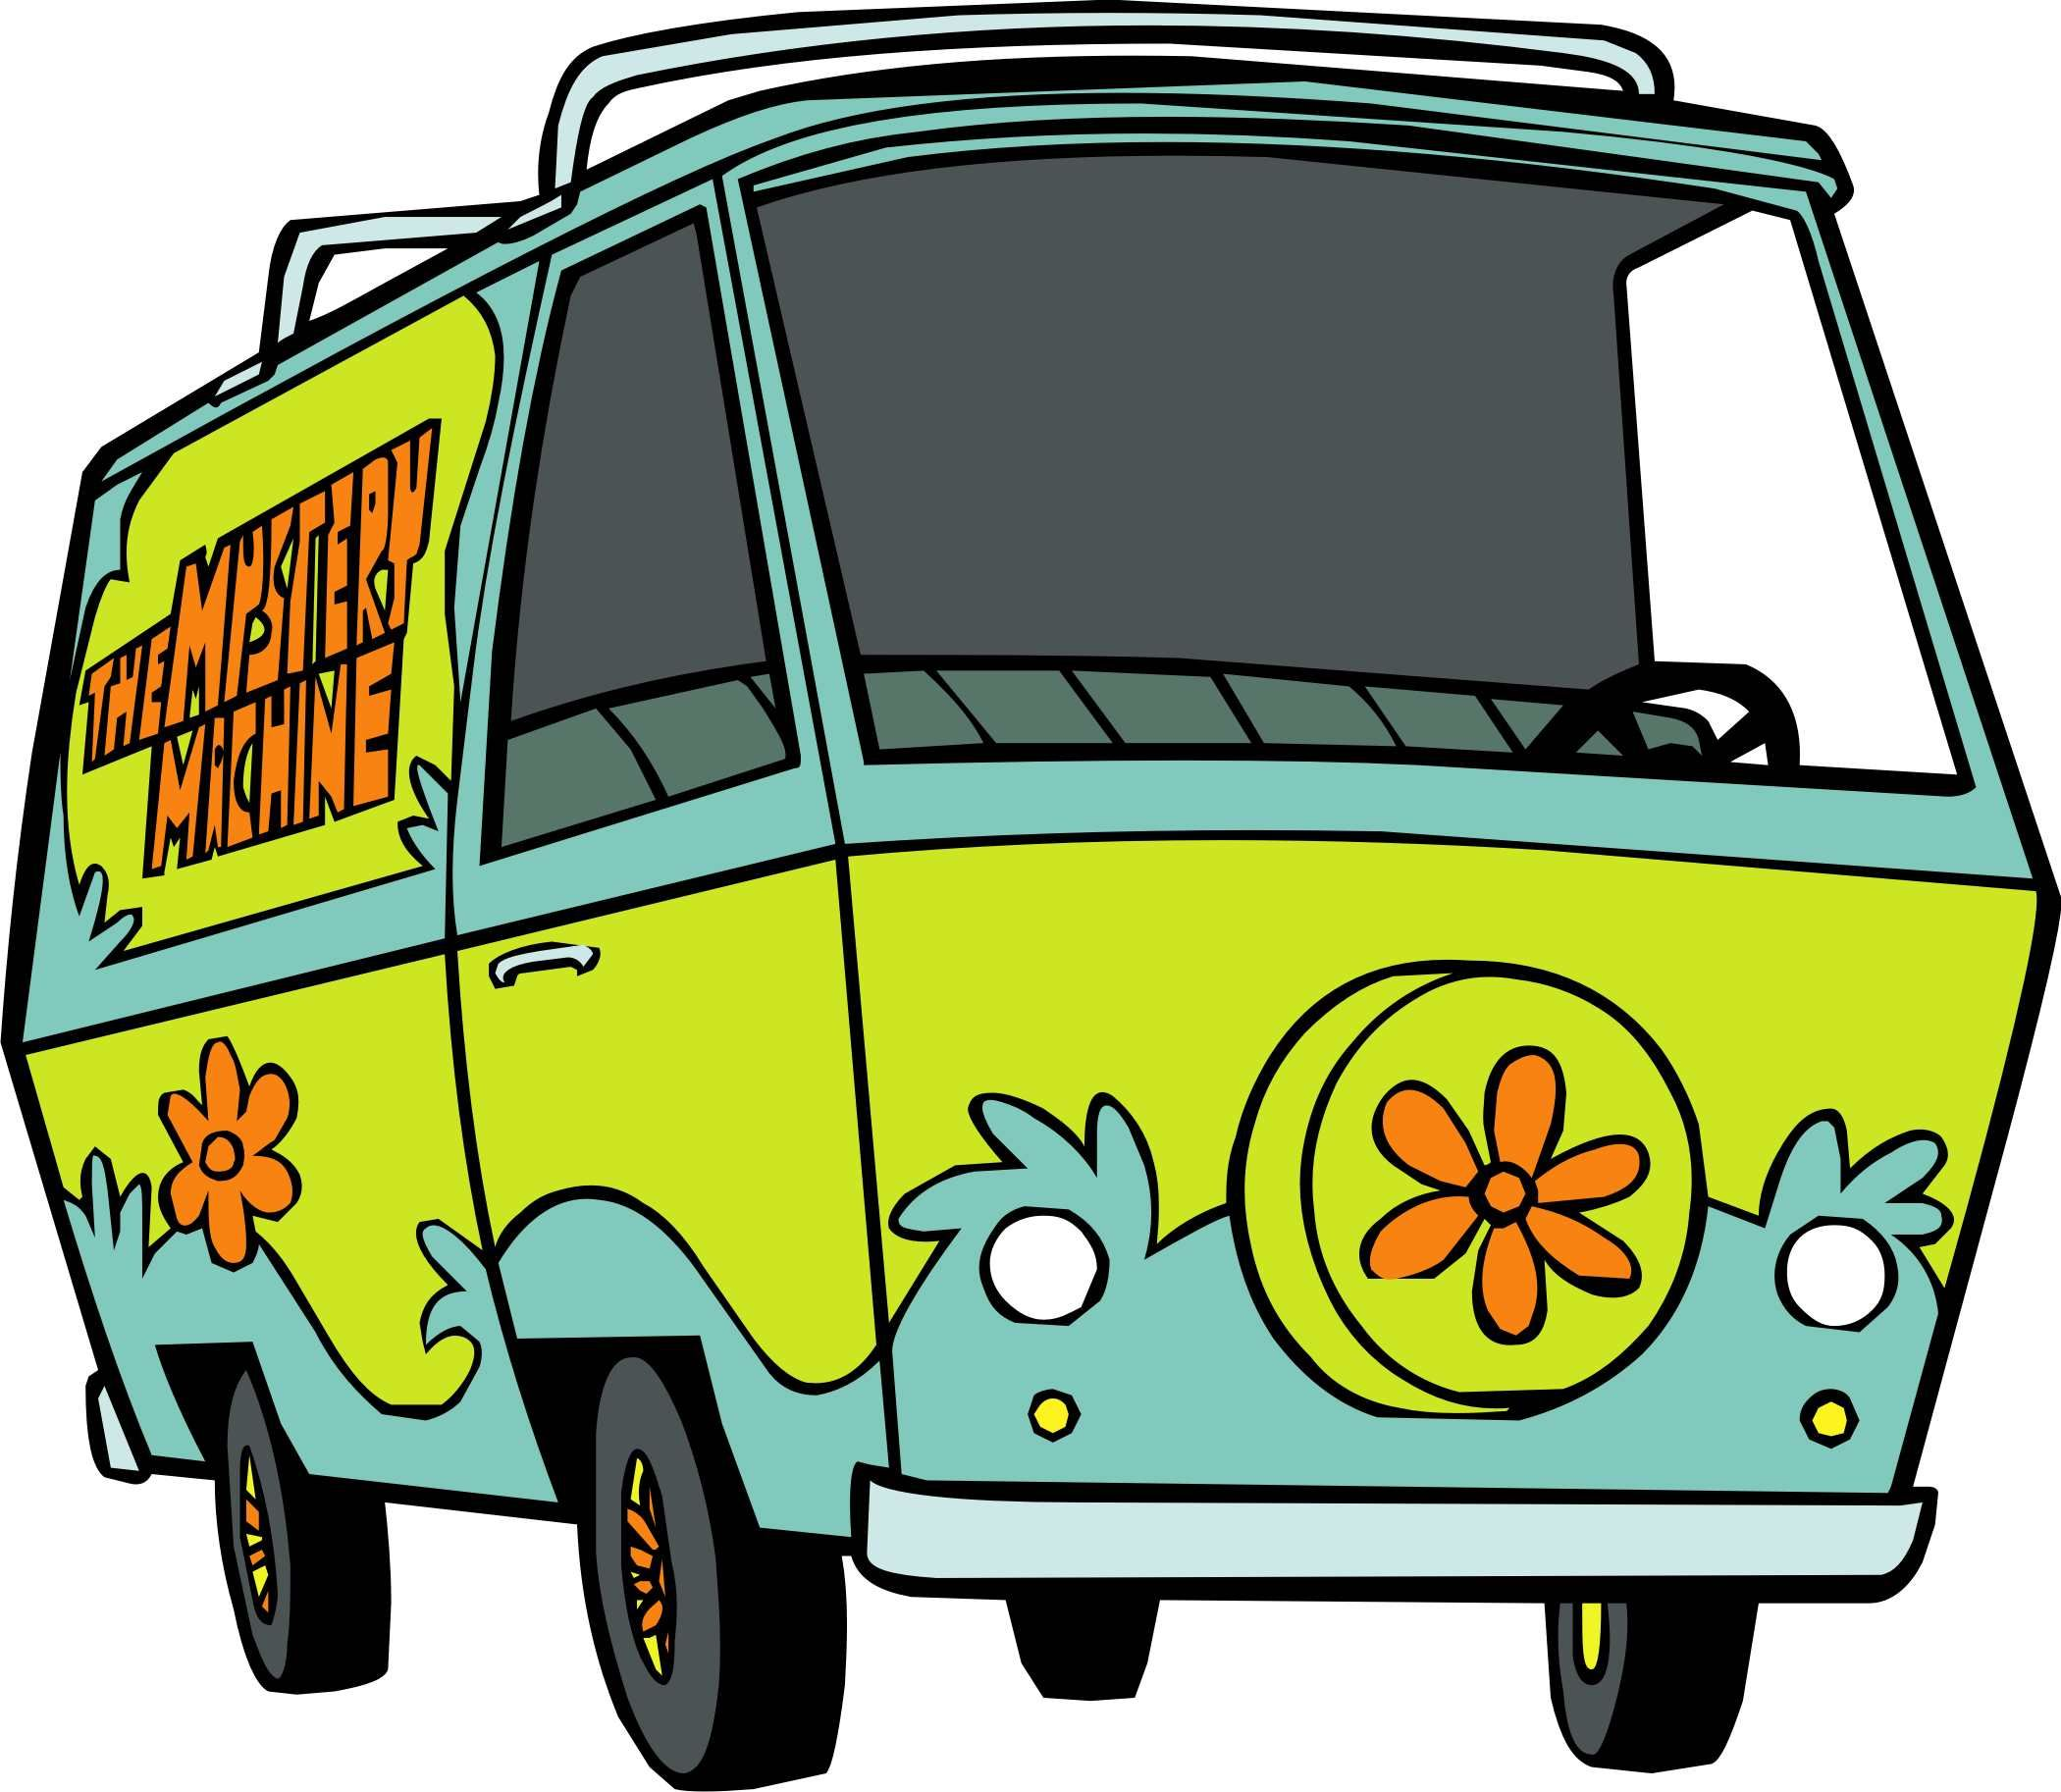 Mystery Machine screenshots, images and pictures - Comic Vine